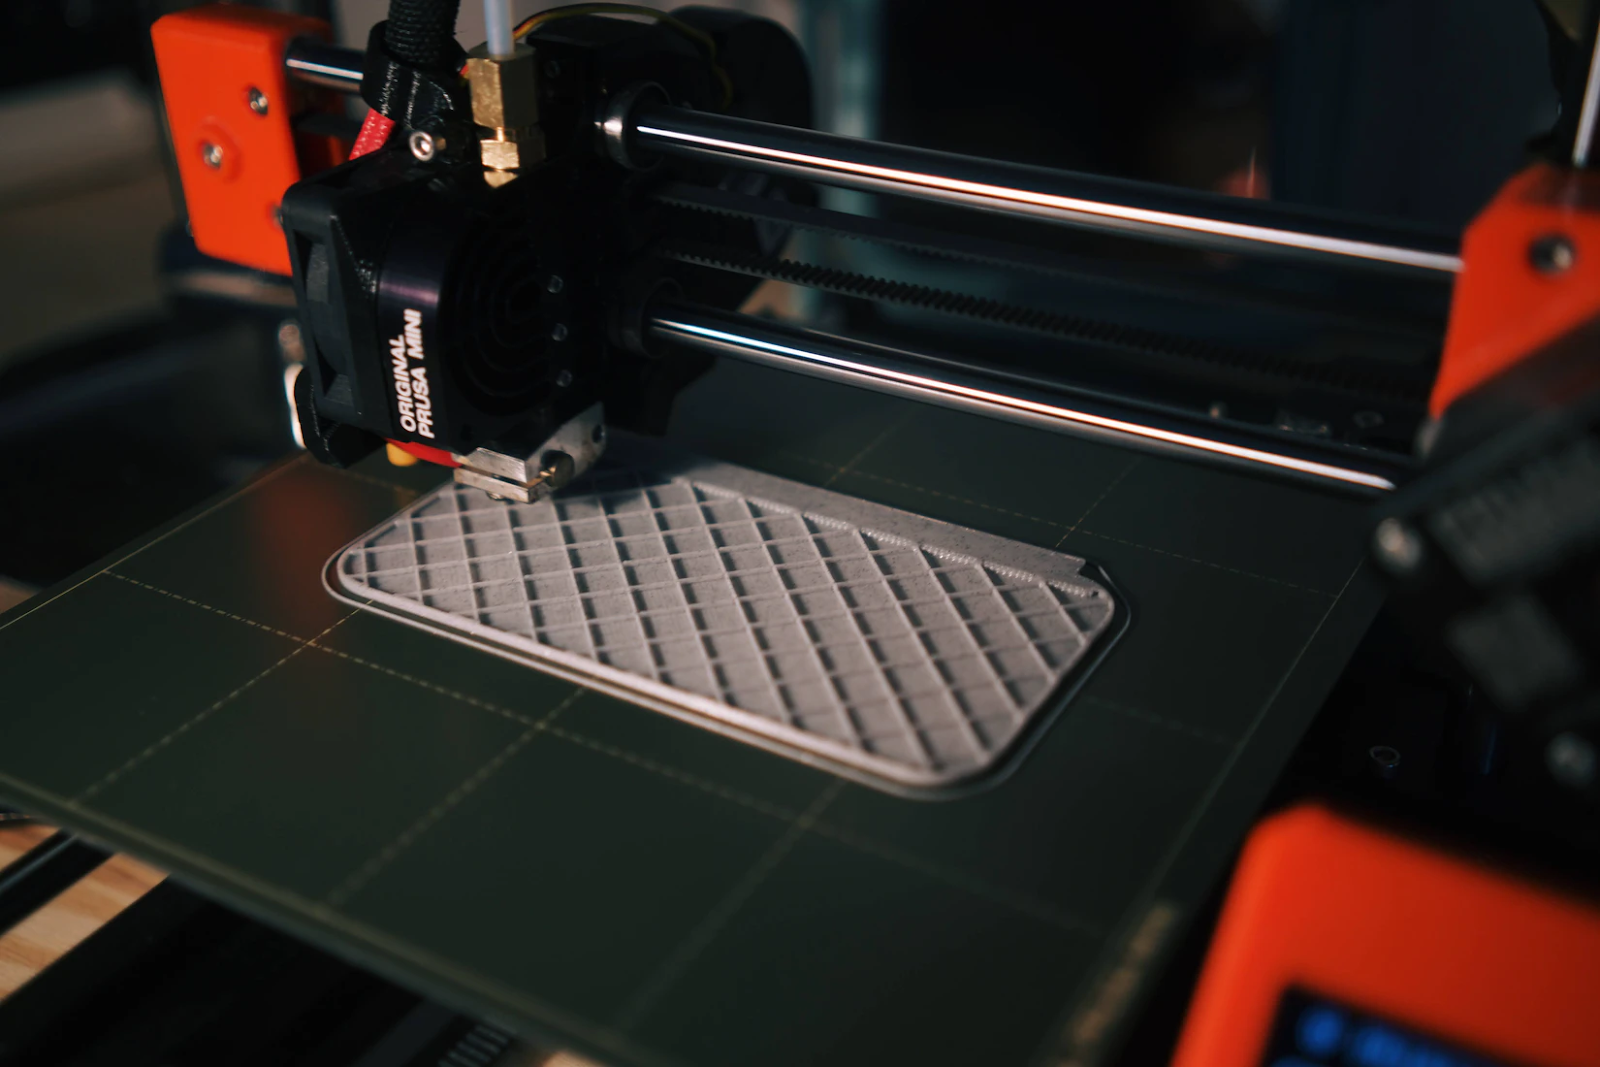 How to choose a 3D printer for home use